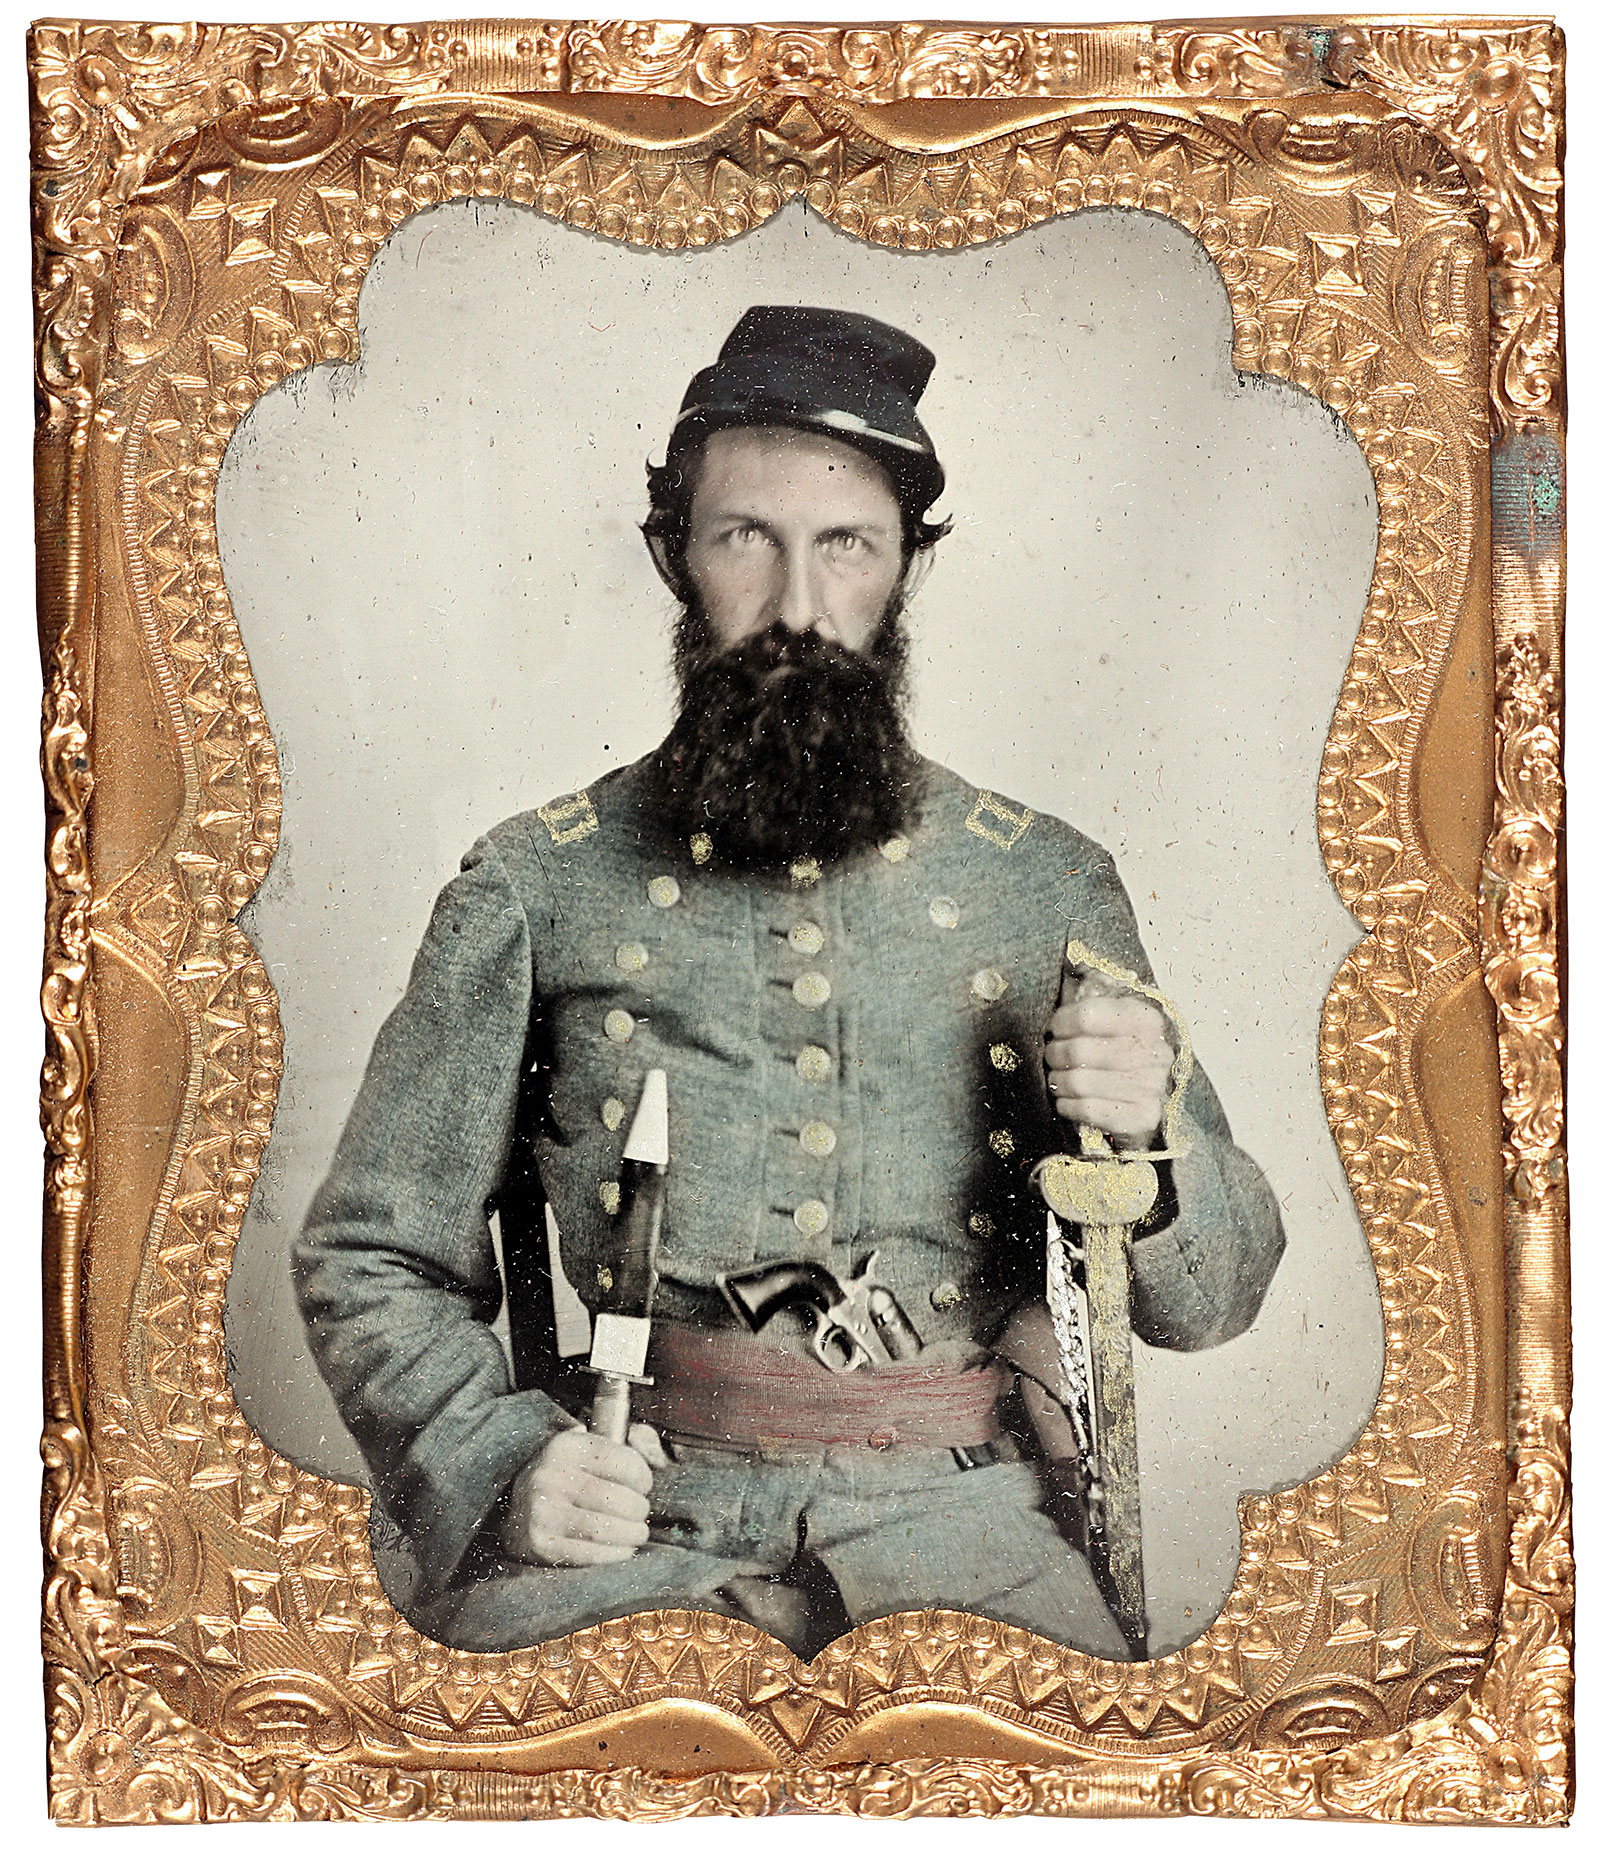 Sixth-plate tintype by an anonymous photographer. David W. Vaughan collection.